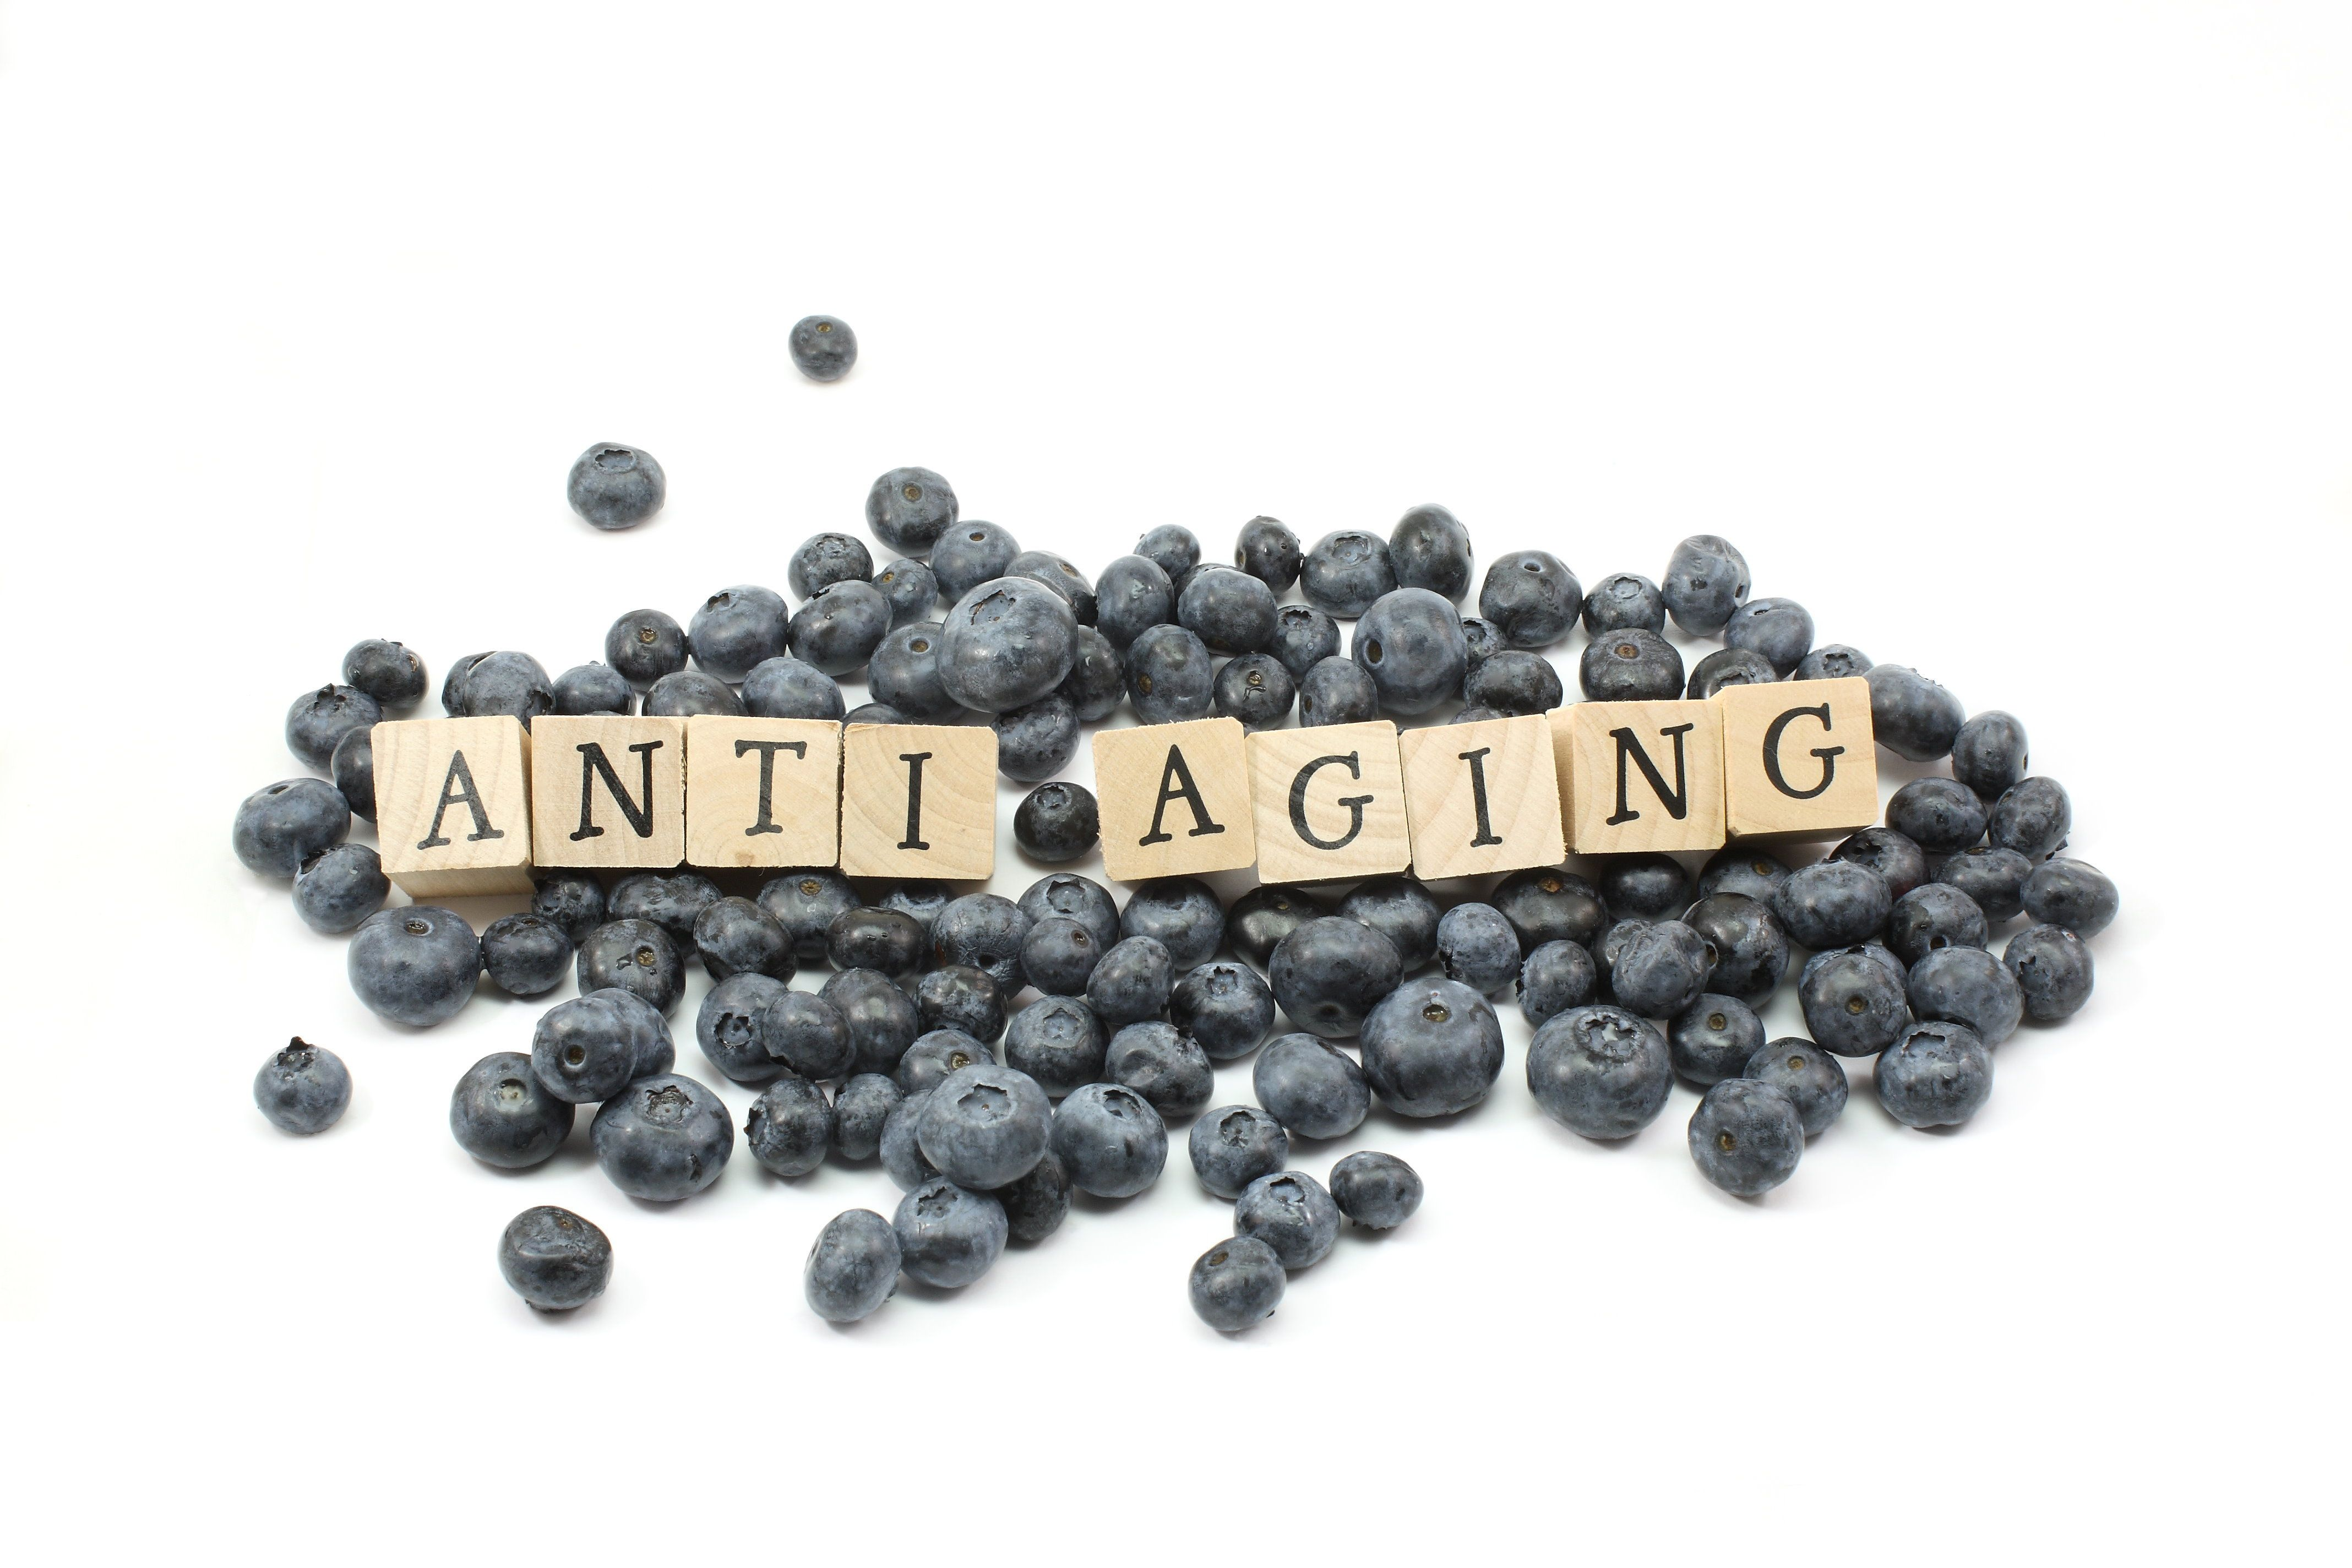 These Foods Help Decrease the Effects of Aging